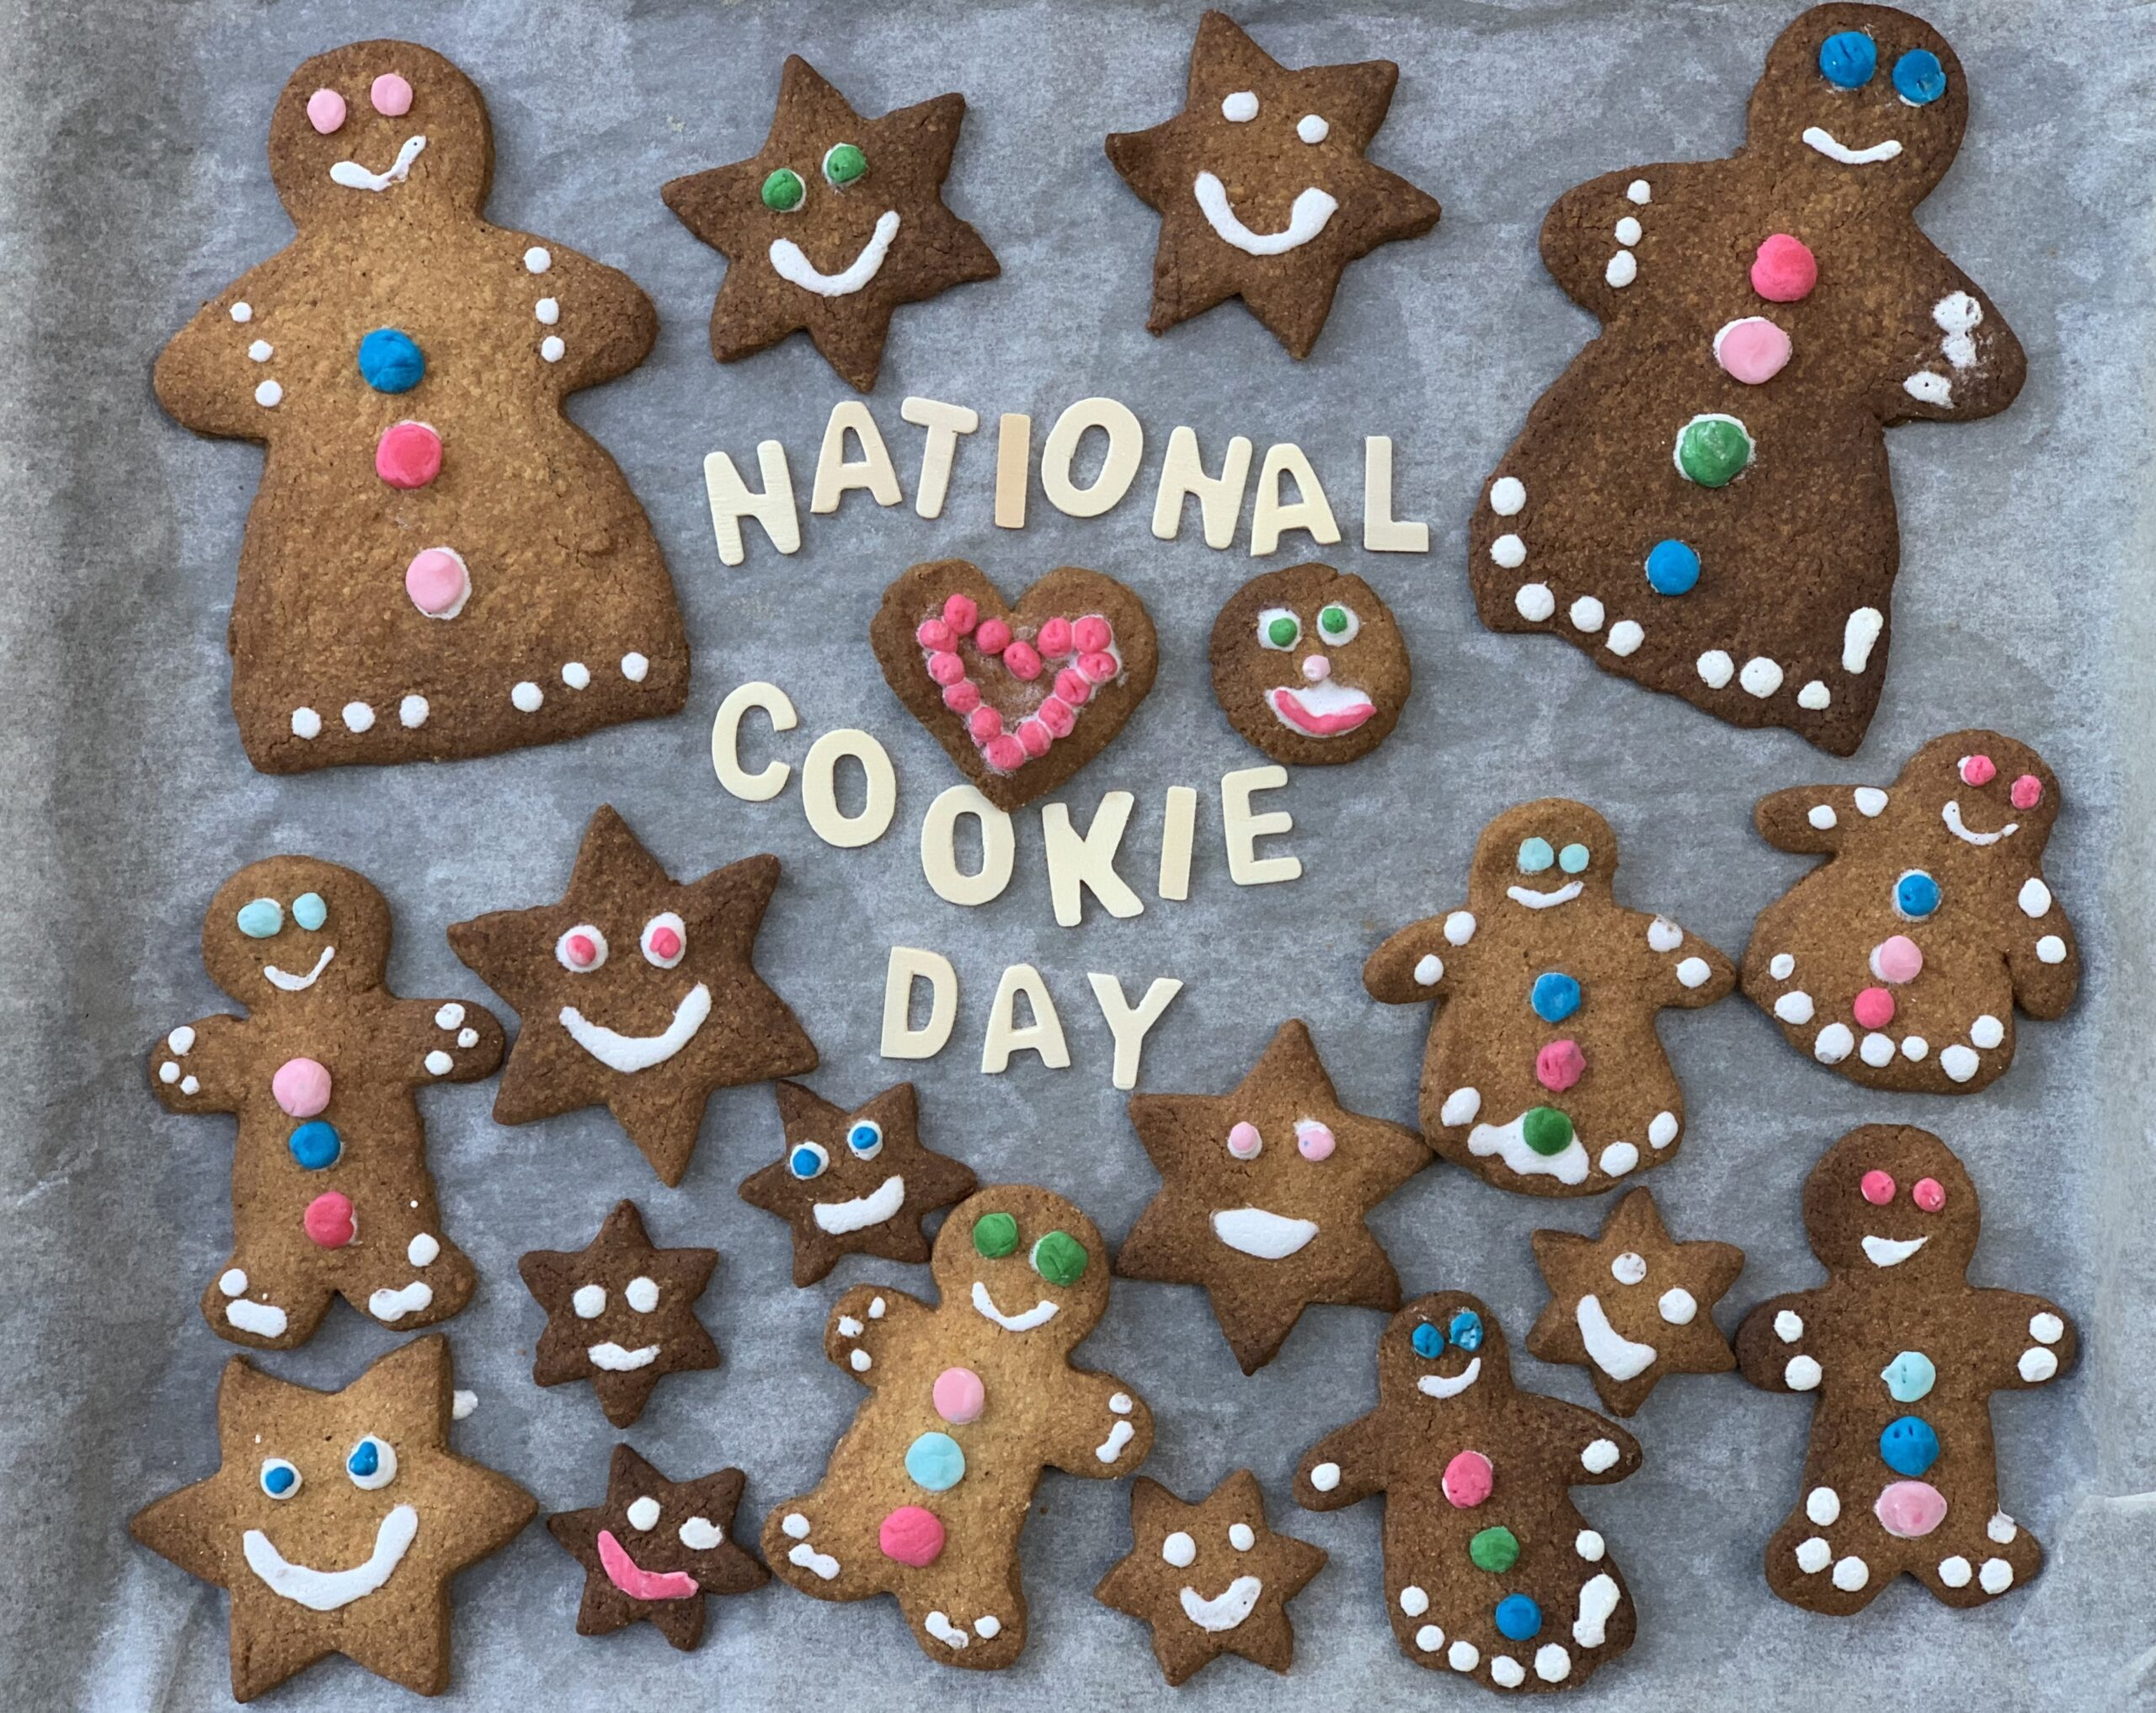 Celebrate National Cookie Day, December 4, 2020